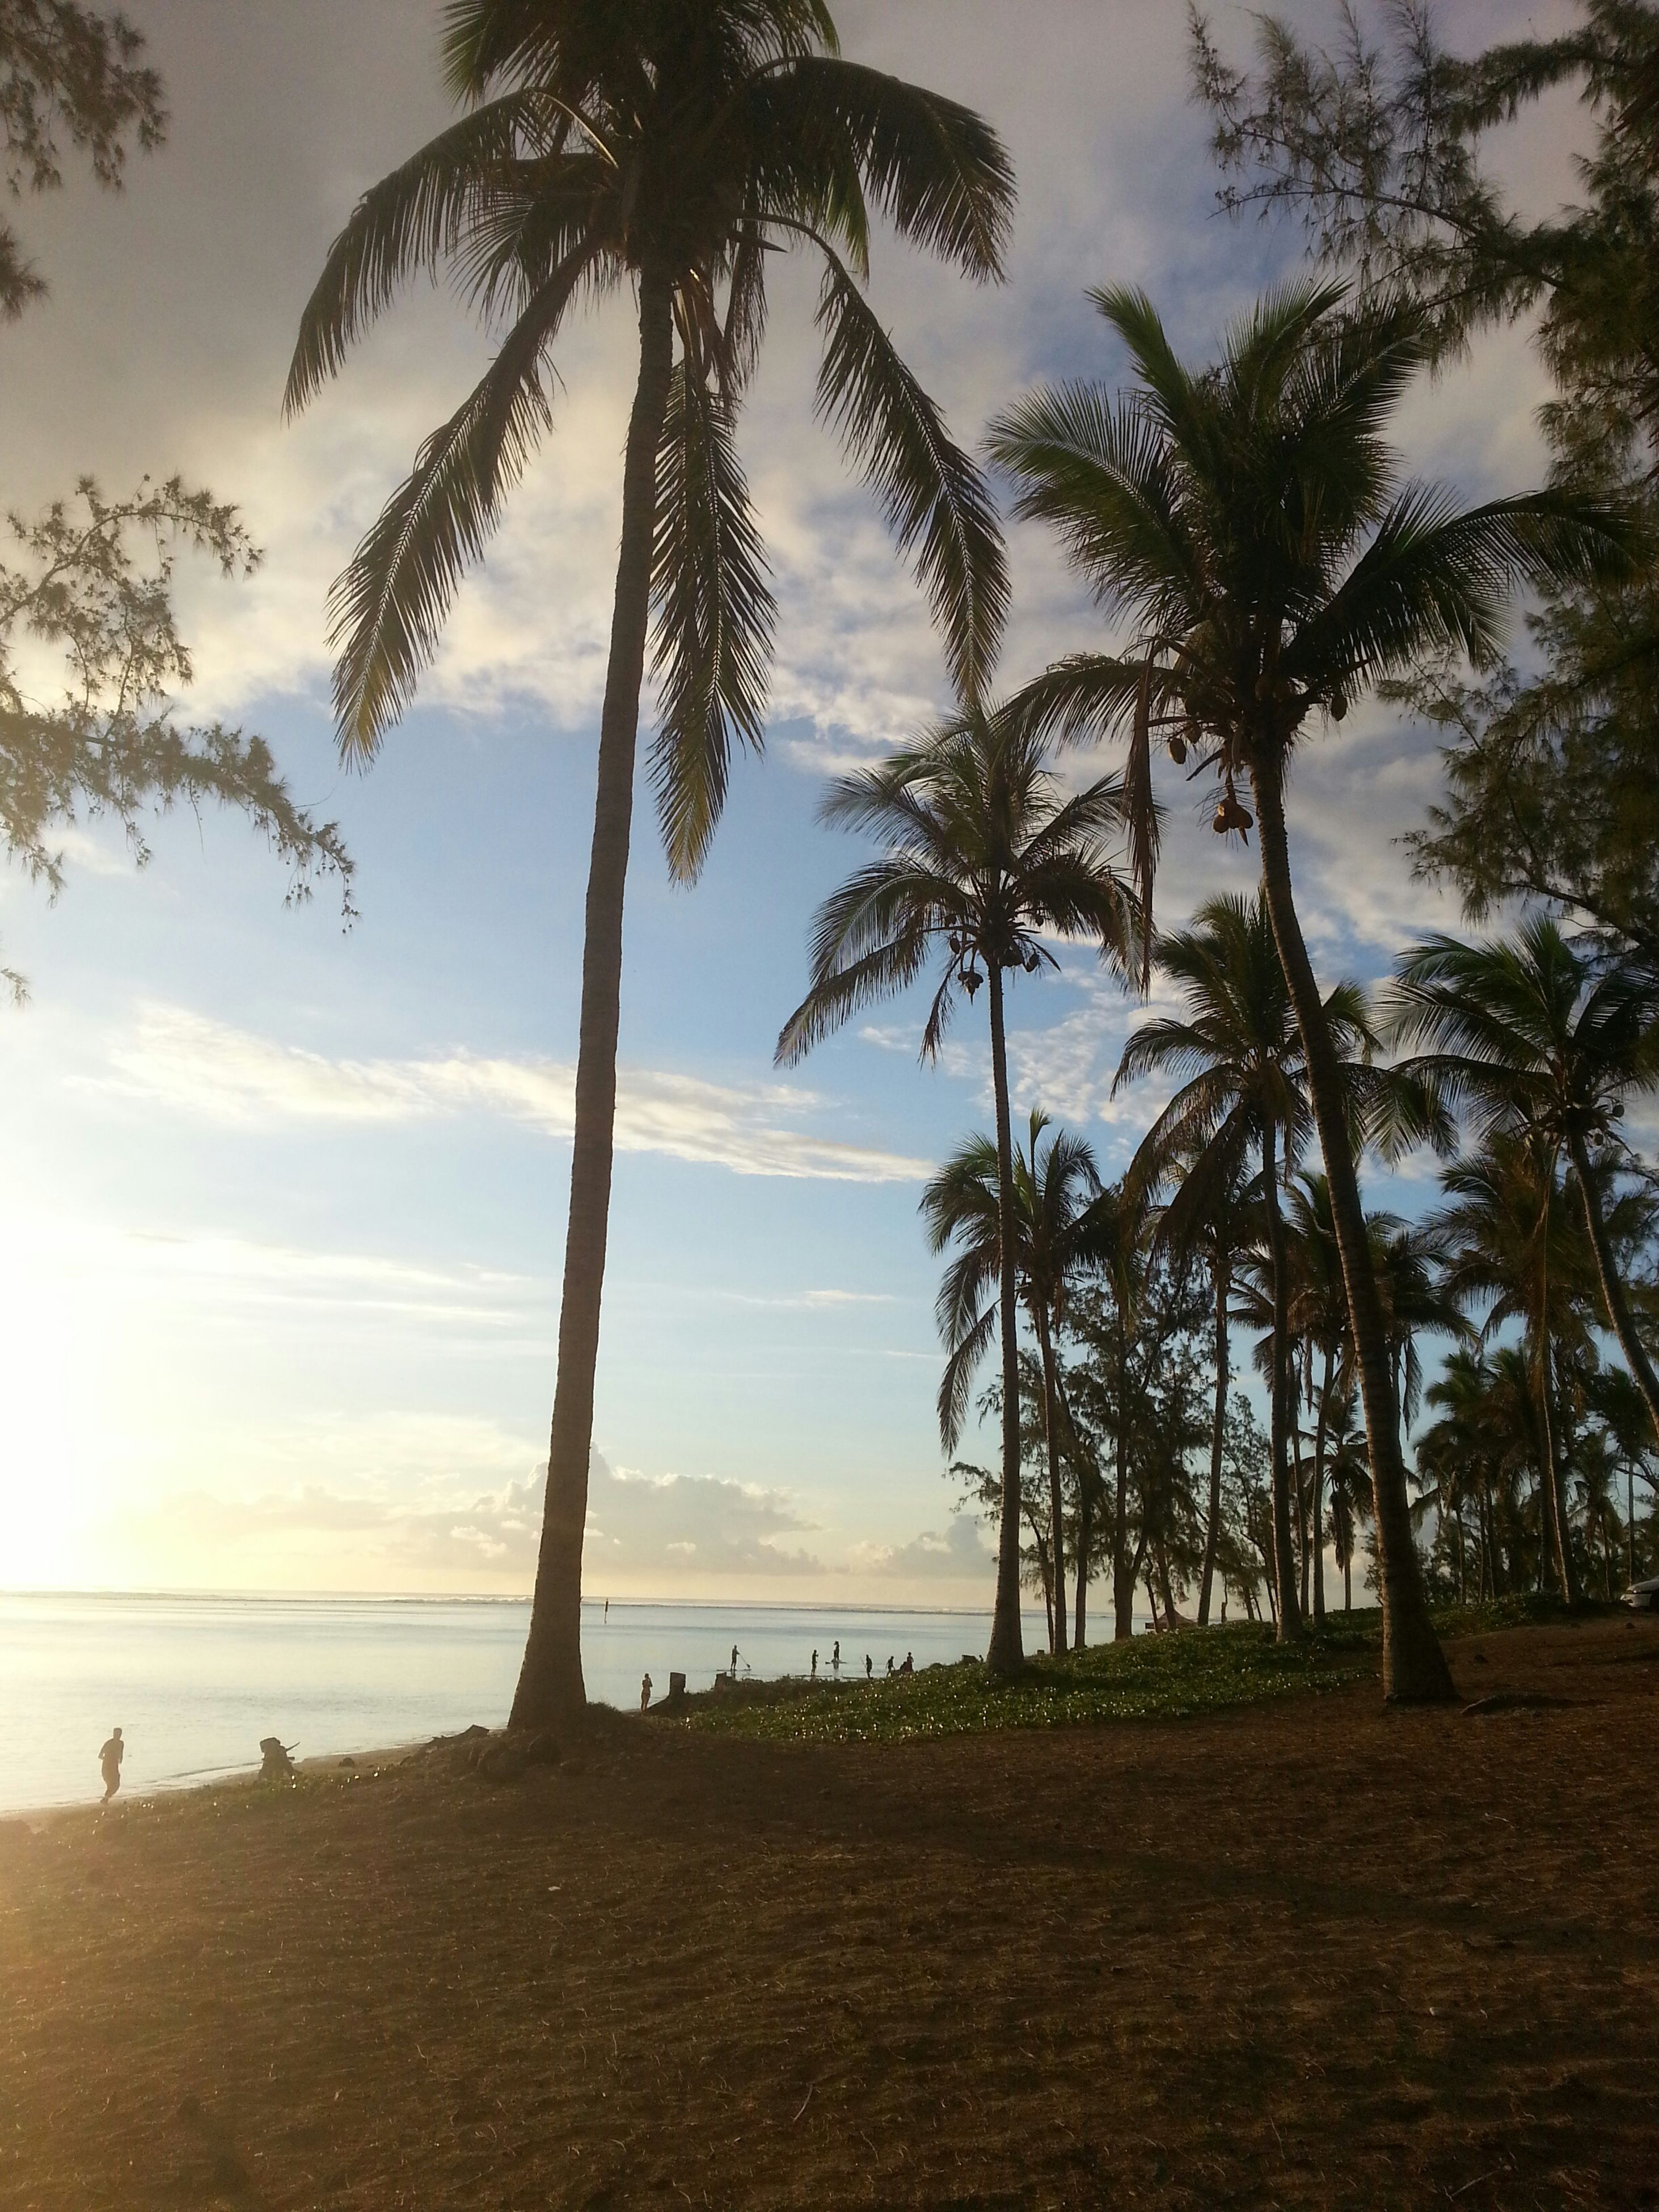 tree, tranquility, palm tree, sky, tranquil scene, beach, scenics, sea, beauty in nature, sunset, horizon over water, nature, silhouette, tree trunk, water, idyllic, shore, growth, cloud - sky, incidental people